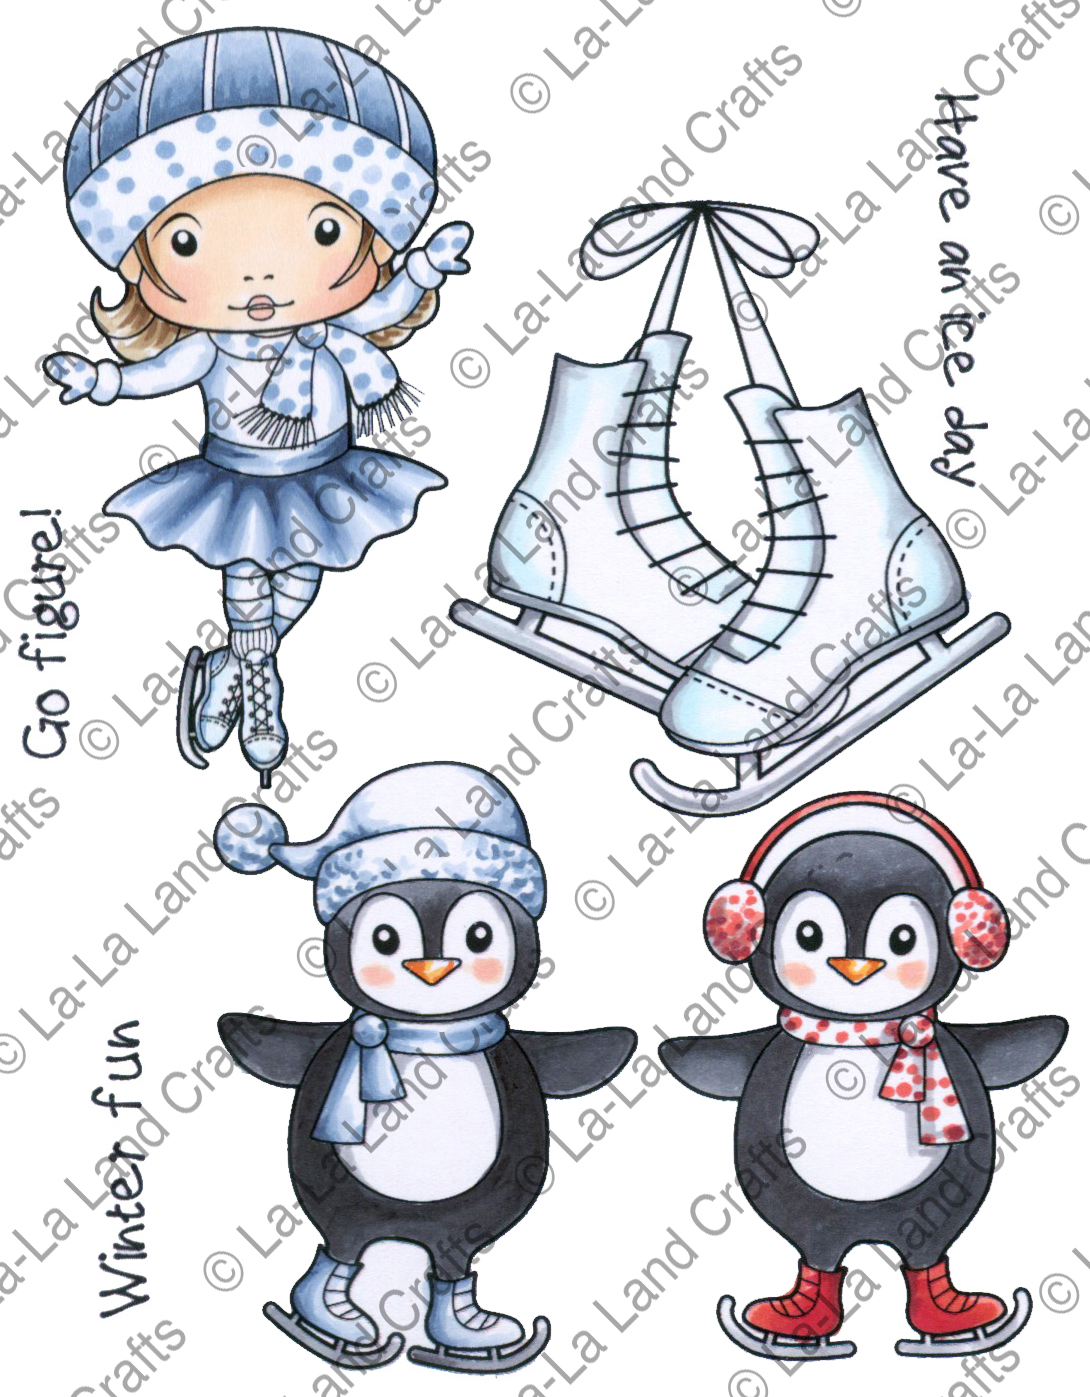 La-La Land - new Winter cling stamps & Dies